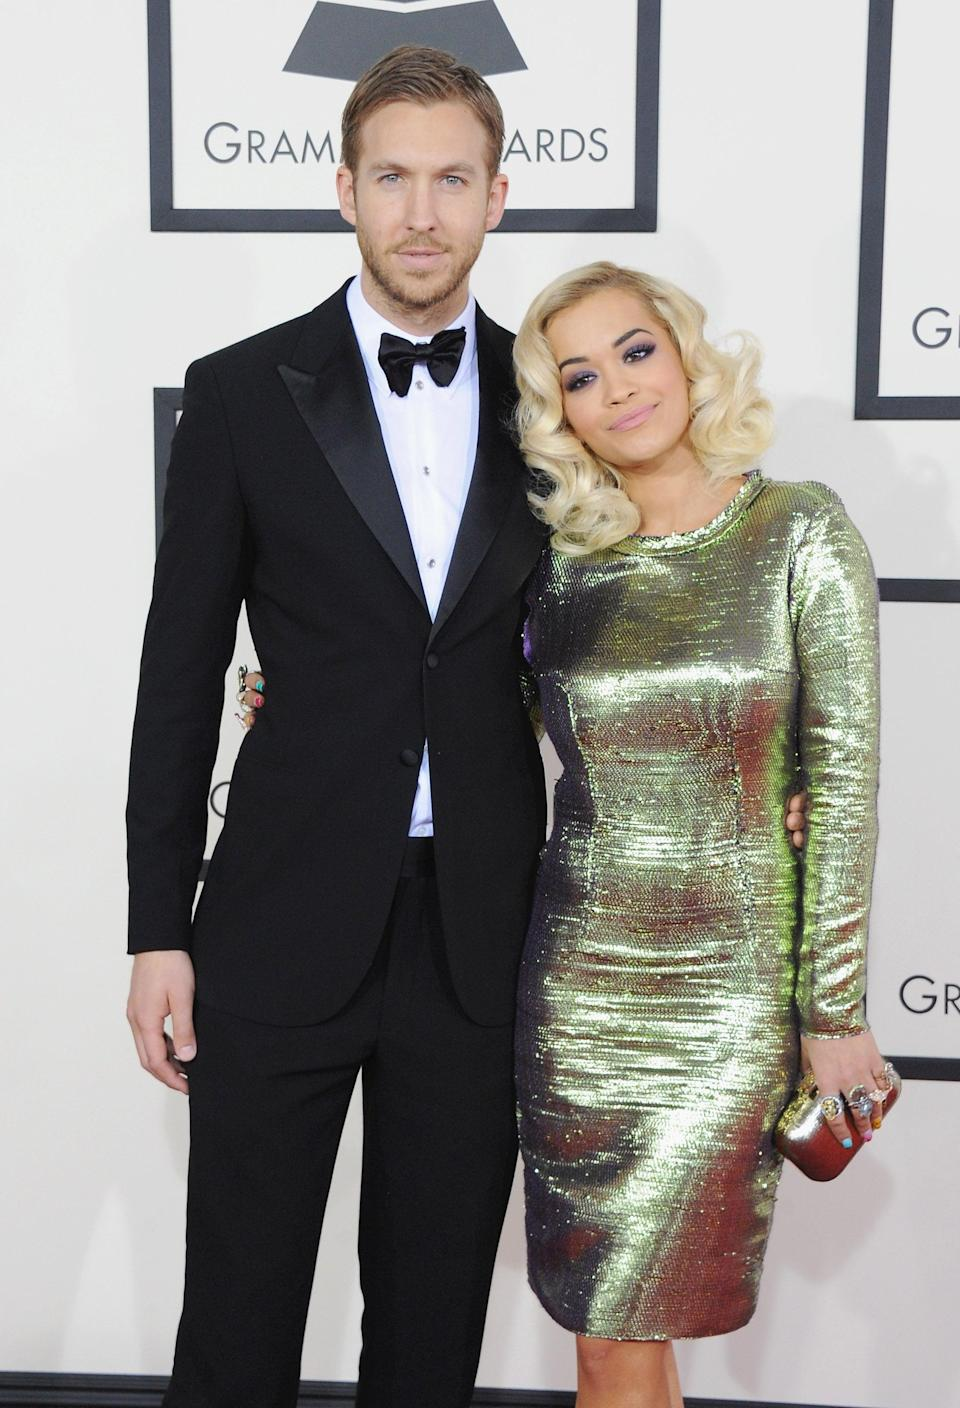 """<p>From about 2013 to 2014, Ora was involved with Calvin Harris, the DJ and songwriter. While they were together, they collaborated on the hit single """"I Will Never Let You Down,"""" but after they broke up, """"custody"""" of the song became a sticking point between the exes: at one point, Ora had to drop out of performing it at the 2014 Teen Choice Awards after Harris refused to allow her to perform it.</p> <p>""""<a href=""""http://www.youtube.com/watch?v=p6xwhCREA94"""" class=""""link rapid-noclick-resp"""" rel=""""nofollow noopener"""" target=""""_blank"""" data-ylk=""""slk:Ask Calvin"""">Ask Calvin</a>,"""" she told <a class=""""link rapid-noclick-resp"""" href=""""https://www.popsugar.com/Ryan-Seacrest"""" rel=""""nofollow noopener"""" target=""""_blank"""" data-ylk=""""slk:Ryan Seacrest"""">Ryan Seacrest</a> on his radio show when asked why she didn't perform at the last minute. <strong>Billboard</strong> later reported that <a href=""""http://www.billboard.com/articles/news/6251382/rita-ora-calvin-harris"""" class=""""link rapid-noclick-resp"""" rel=""""nofollow noopener"""" target=""""_blank"""" data-ylk=""""slk:Harris denied permission"""">Harris denied permission</a> for any televised performances and sync licenses of the track, tweeting that he had a """"damn good reason"""" for it. Ora ultimately had to scrap an entire album they'd planned.</p> <p>""""<a href=""""http://www.marieclaire.com/celebrity/a14704/rita-ora-july-2015-cover/"""" class=""""link rapid-noclick-resp"""" rel=""""nofollow noopener"""" target=""""_blank"""" data-ylk=""""slk:I thought he had my back"""">I thought he had my back</a> and that he'd never steer me wrong. But then 'I Will Never Let You Down' came out, and everything started to go a bit weird. I don't know if it was because business was mixed with personal or what,"""" Ora told <strong>Marie Claire</strong> in 2015.</p>"""